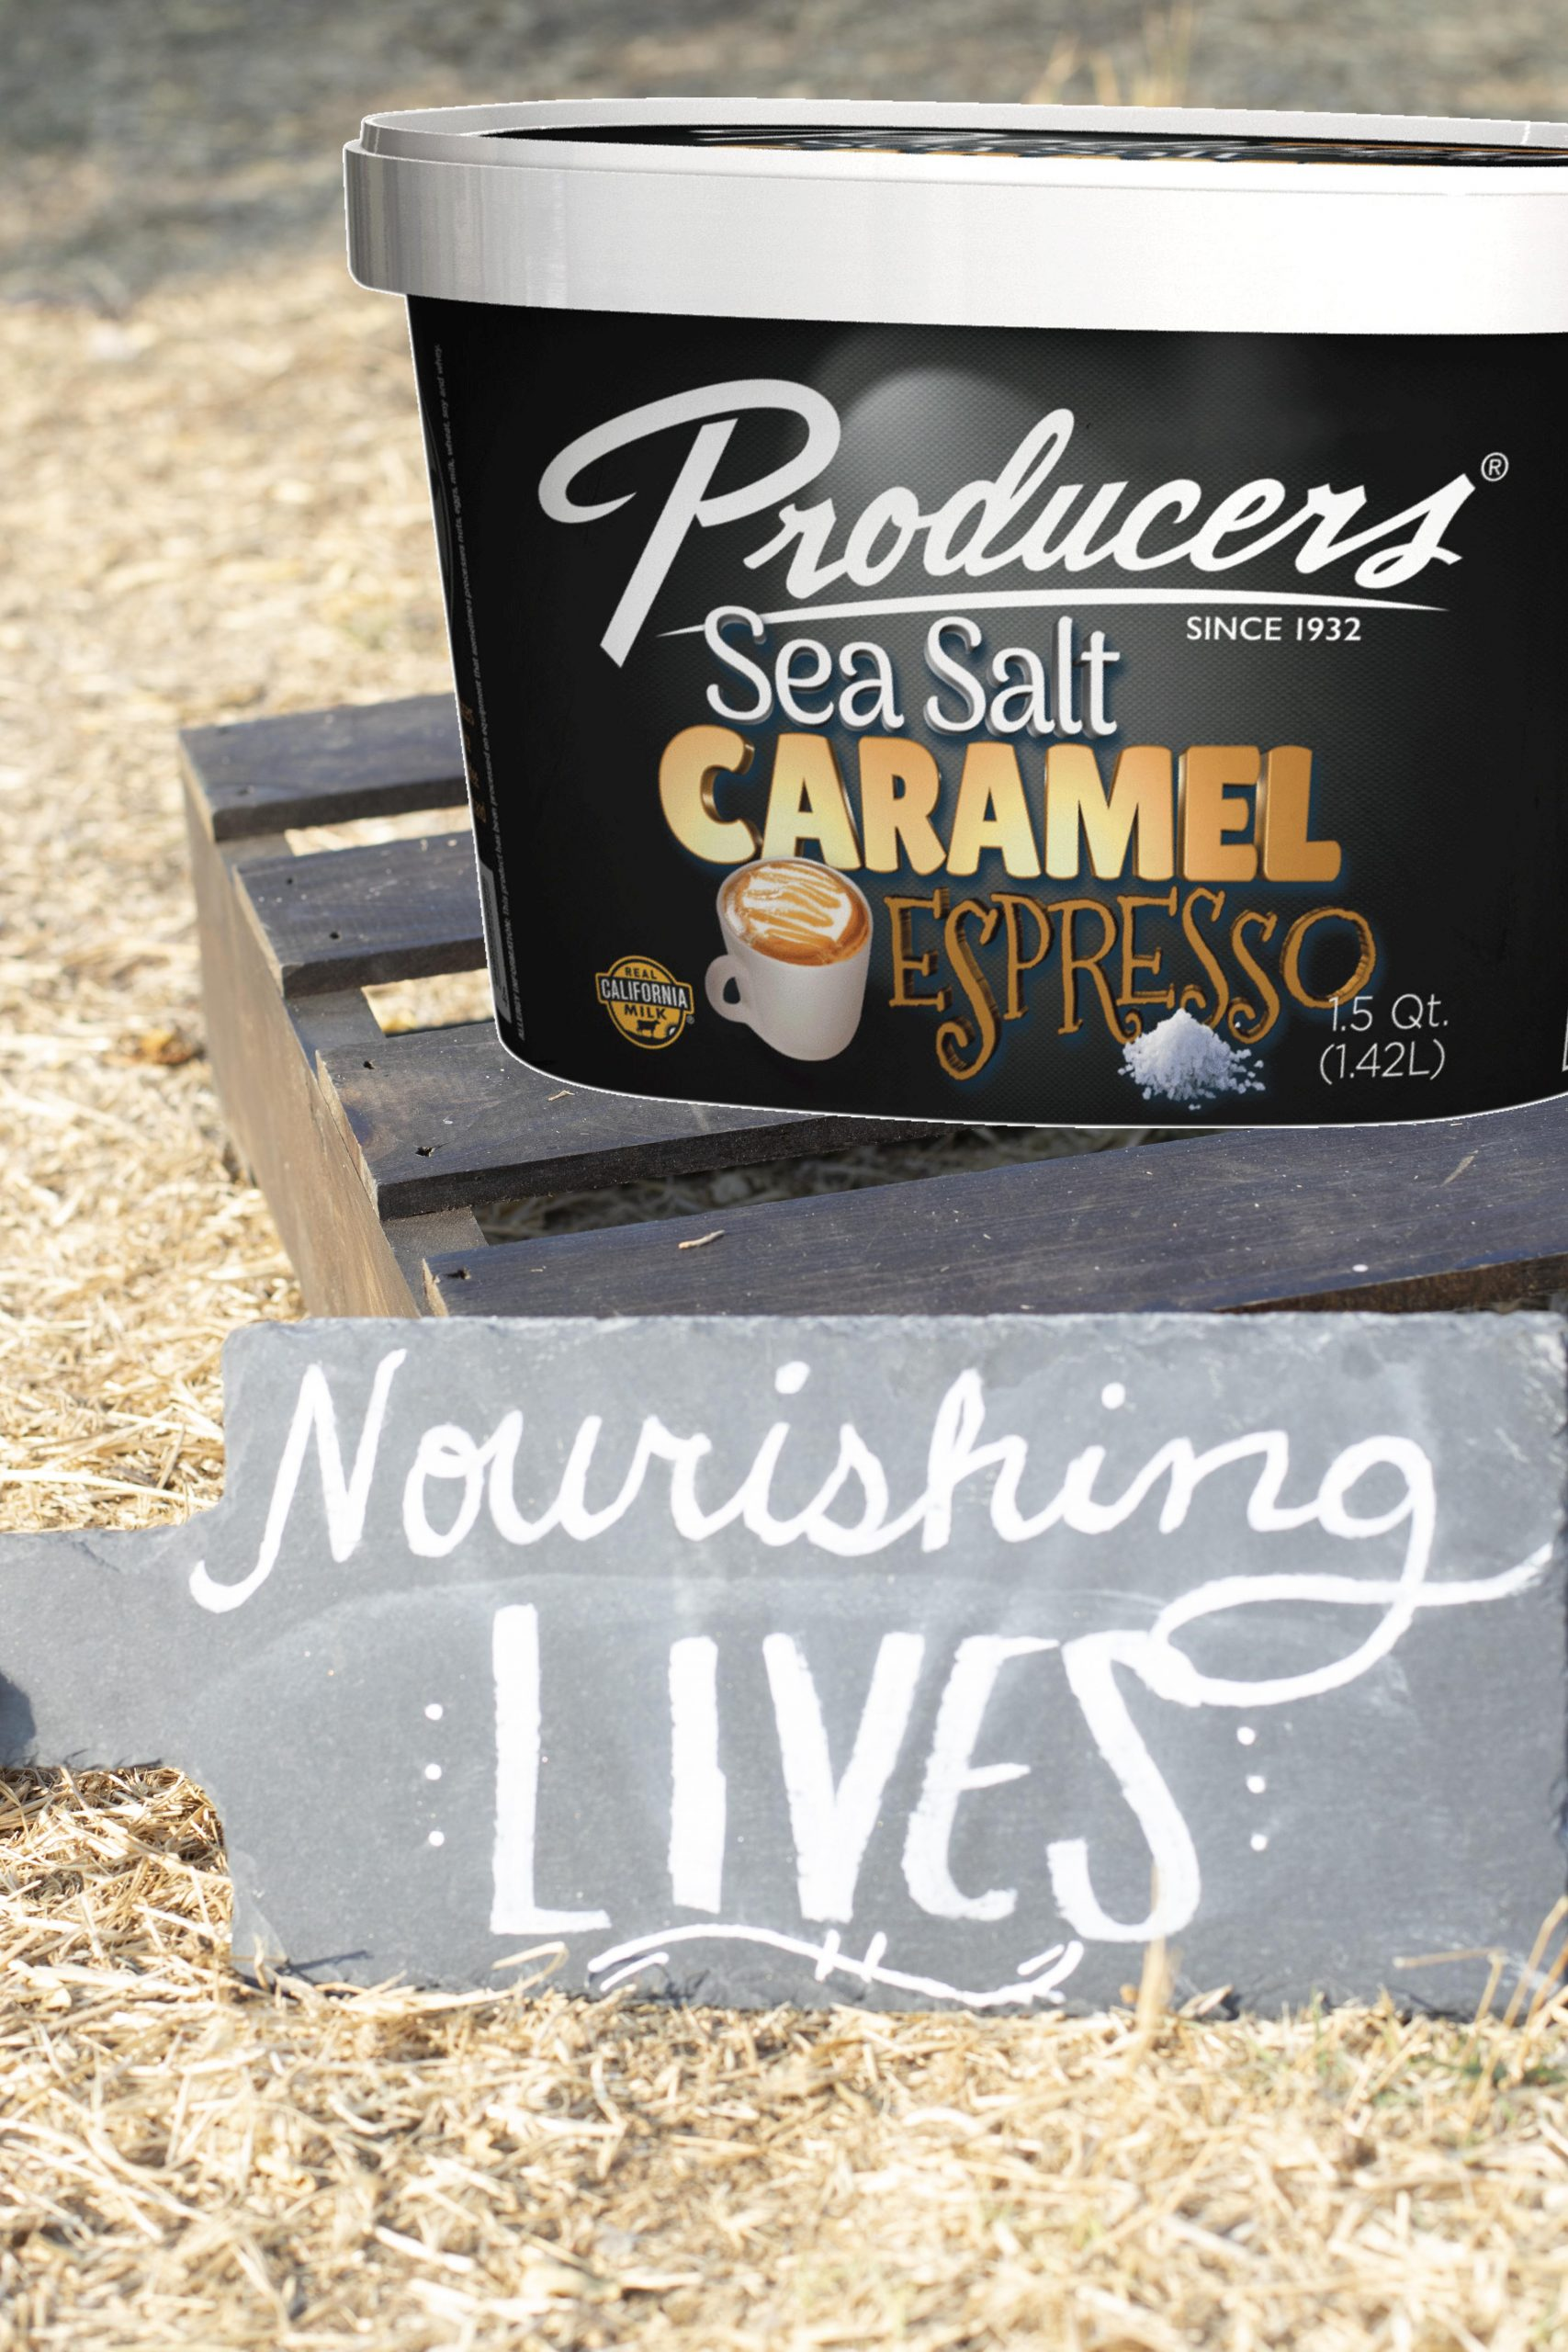 Sea Salt Caramel Espresso Producers Ice Cream sitting on wood in the middle of a hay field.